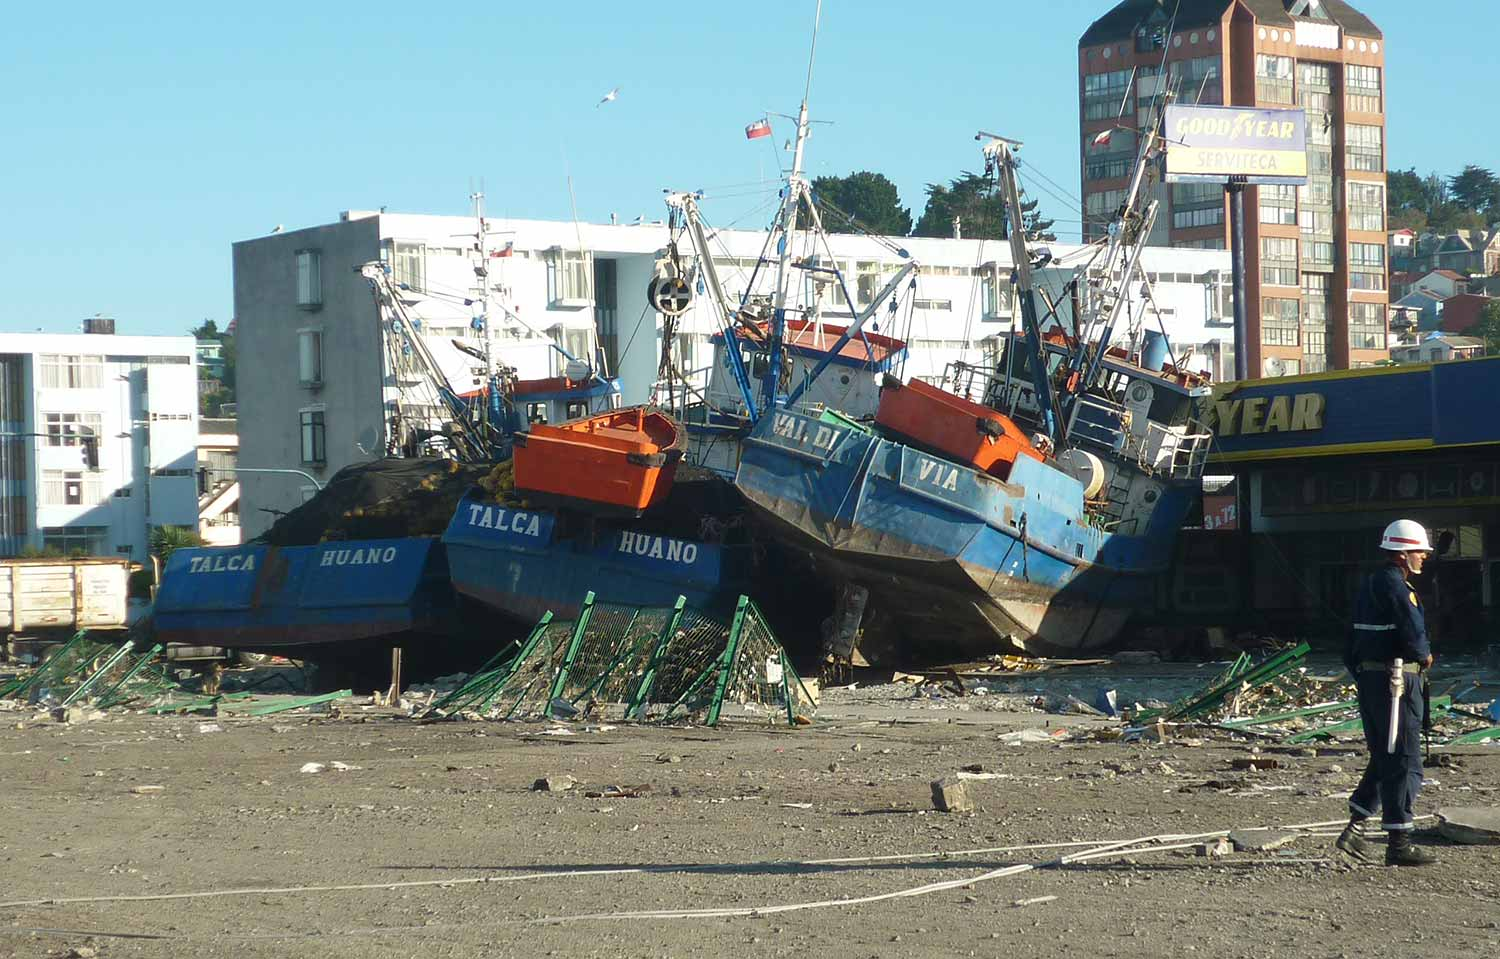 Tsunami aftermath in Talcahunao, Chile.